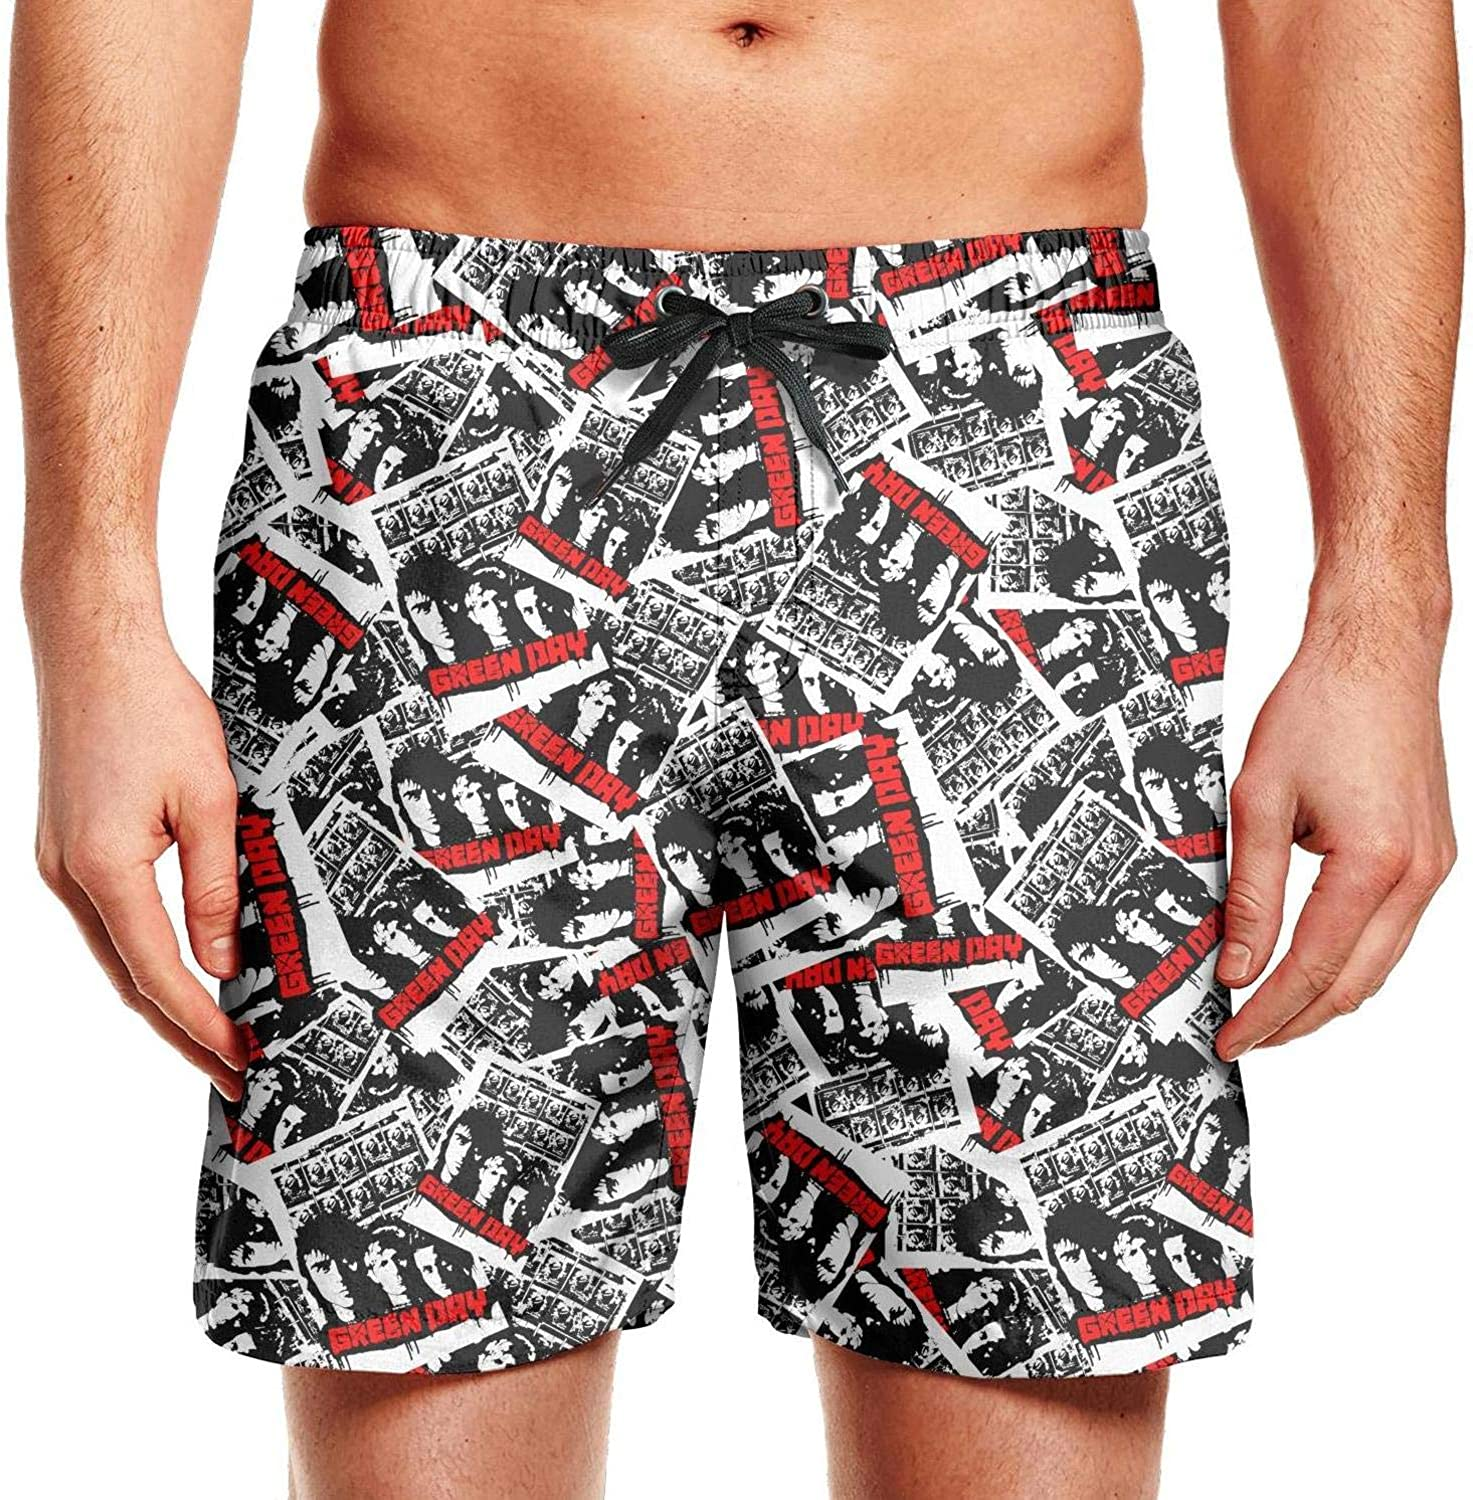 Mens Beach Shorts Popular Music Swimsuit Trunks Jogging Vacation Surfing Board